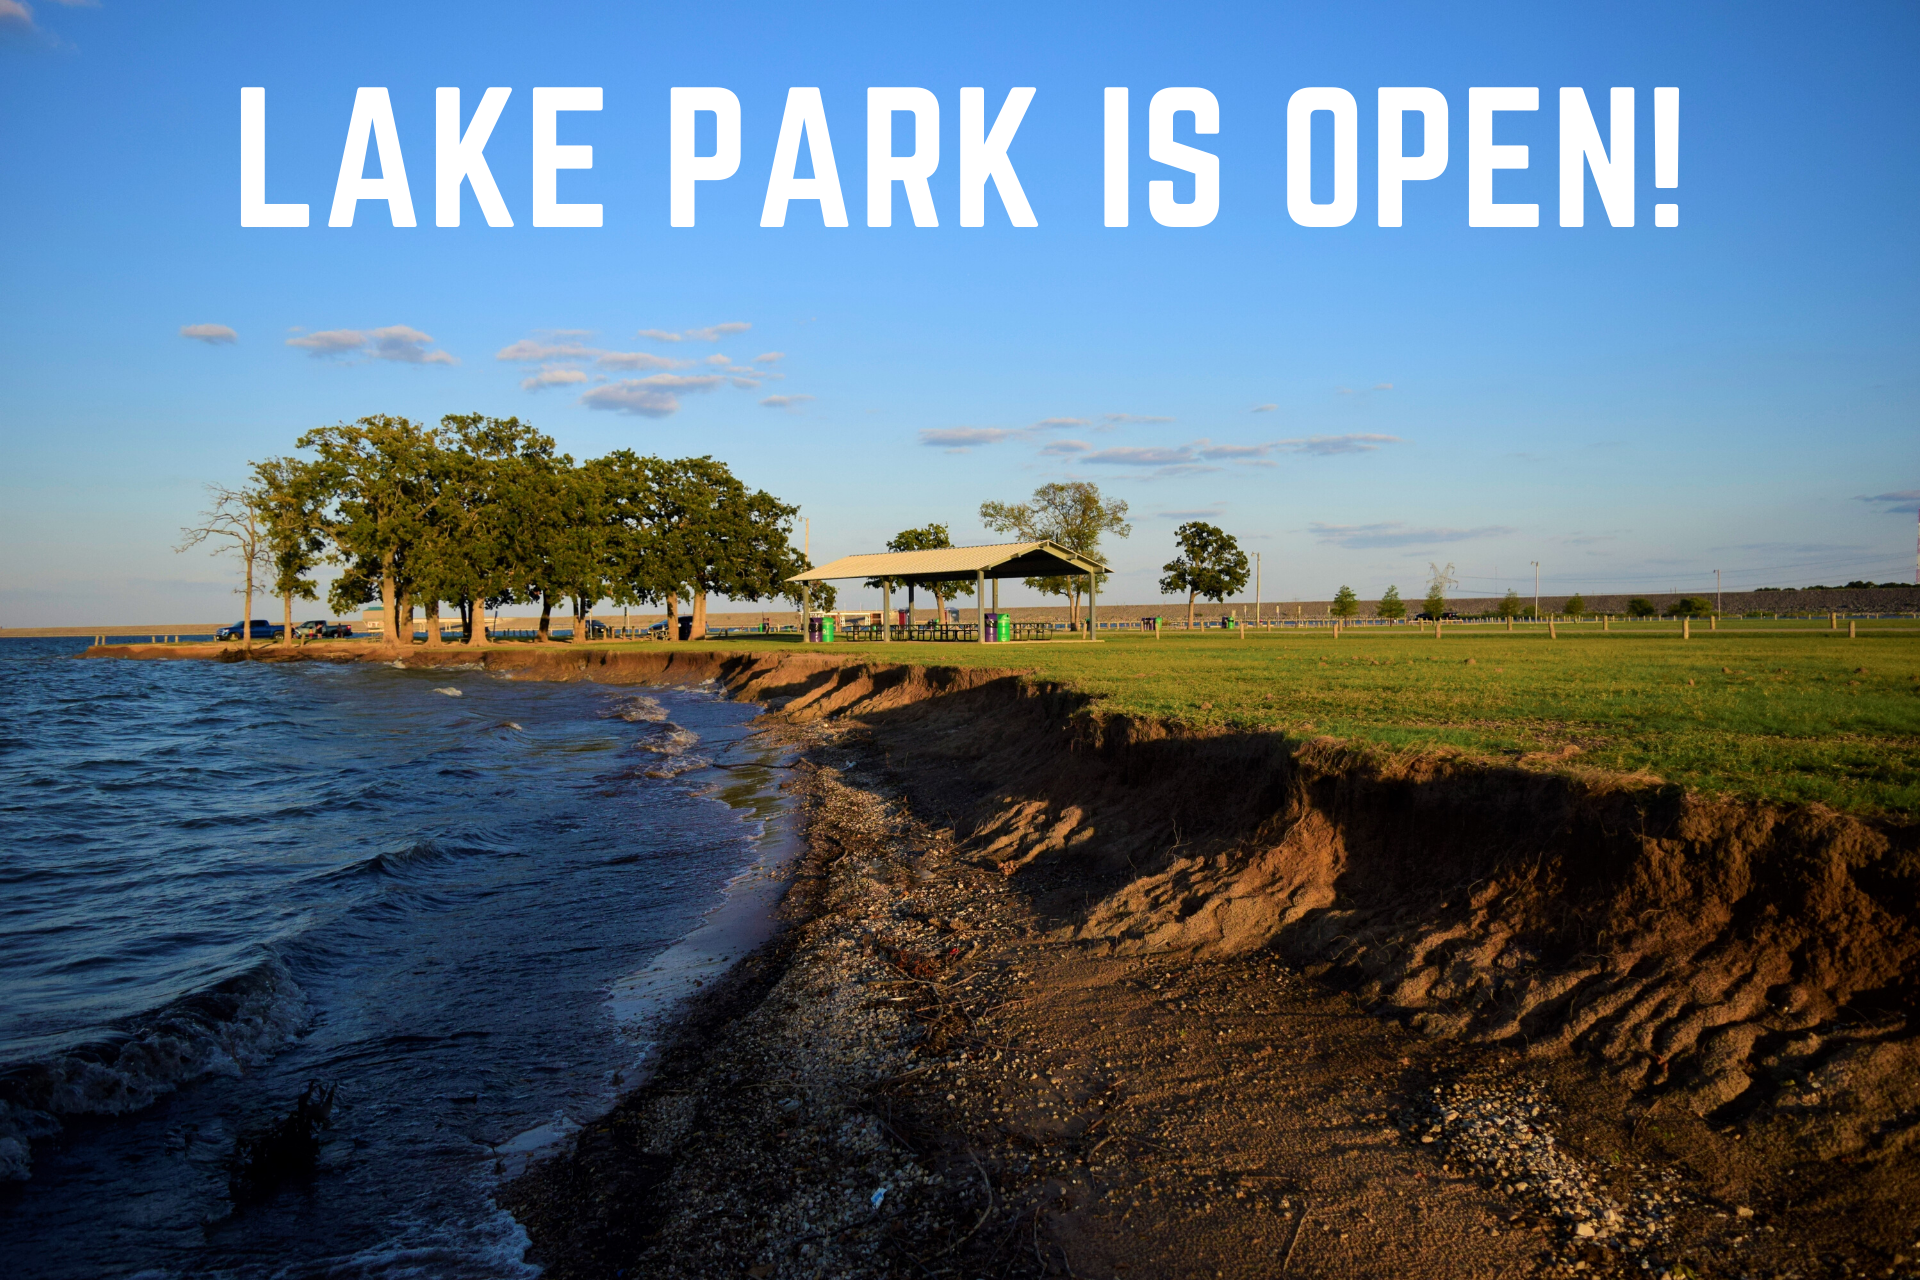 LAKE PARK IS OPEN!